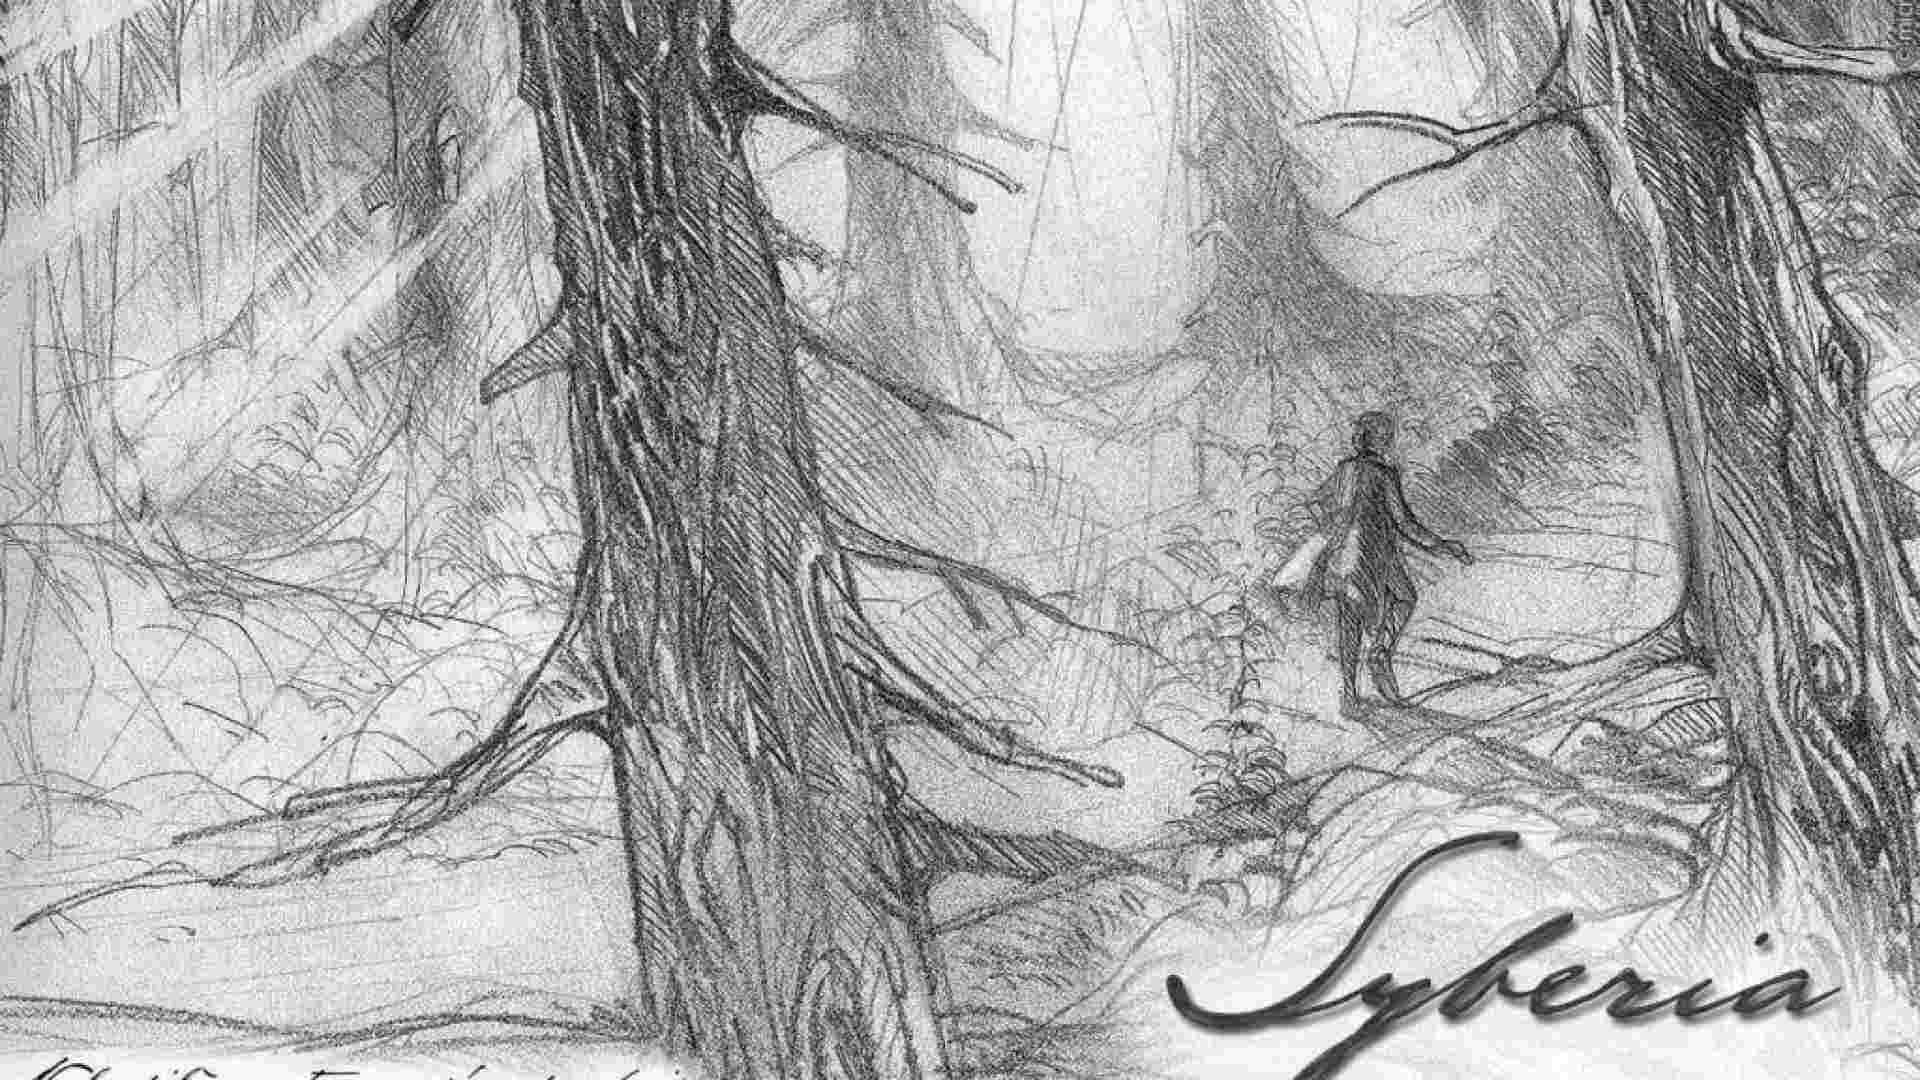 syberia_forest_kate_sketch_games_1920x1080_hd-wallpaper-526556